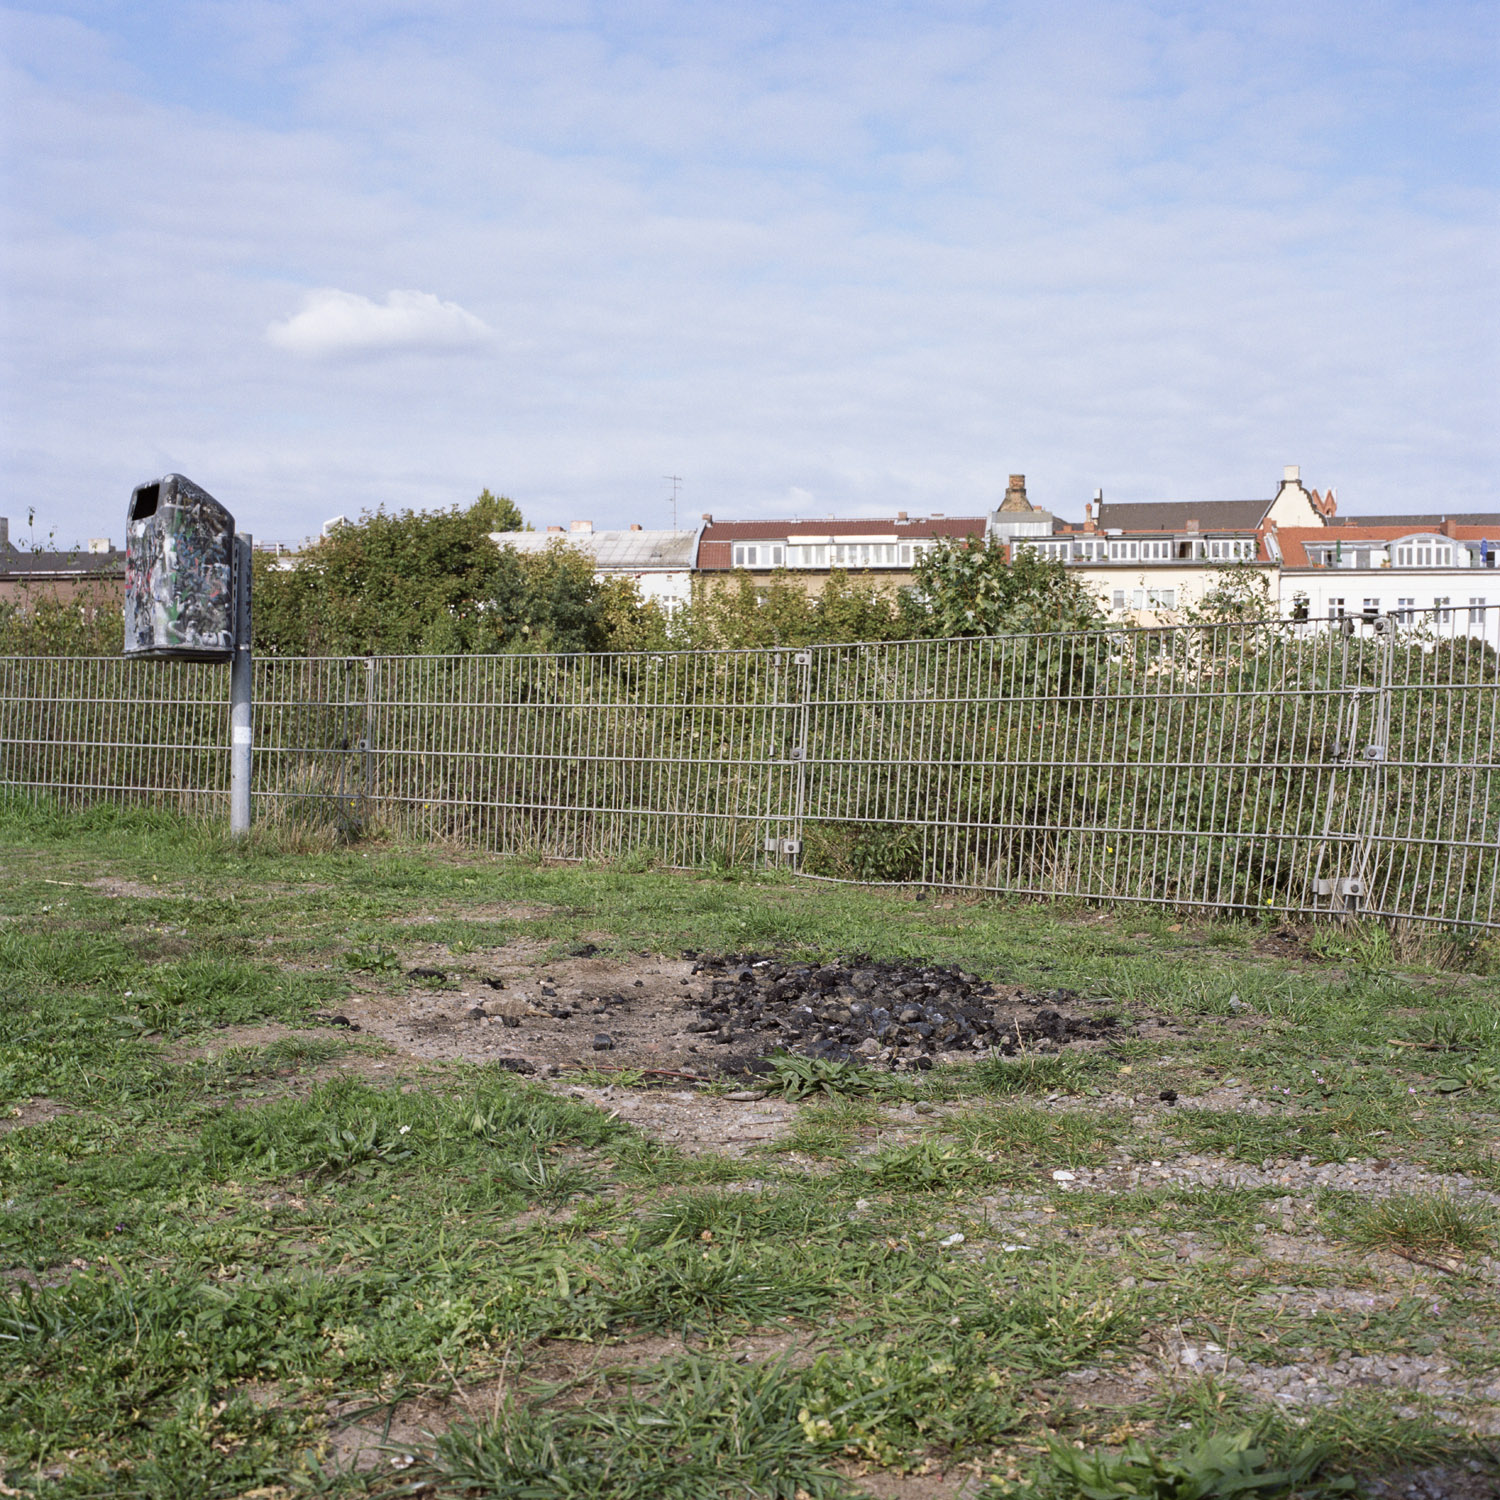 Ashes, 2008, From Berlin Project By Abby Storey